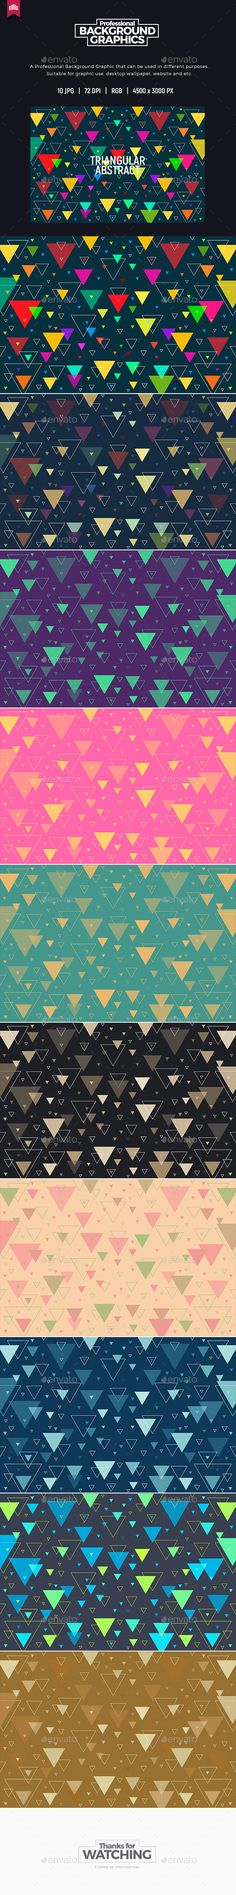 Triangular Abstract - Background by IntenseArtisan TRIANGULAR ABSTRACT BACKGROUNDSPECIFICATION:10 Jpeg Backgrounds 4500脳3000 pixels R.G.B. color Have a question or a suggestion? Fee